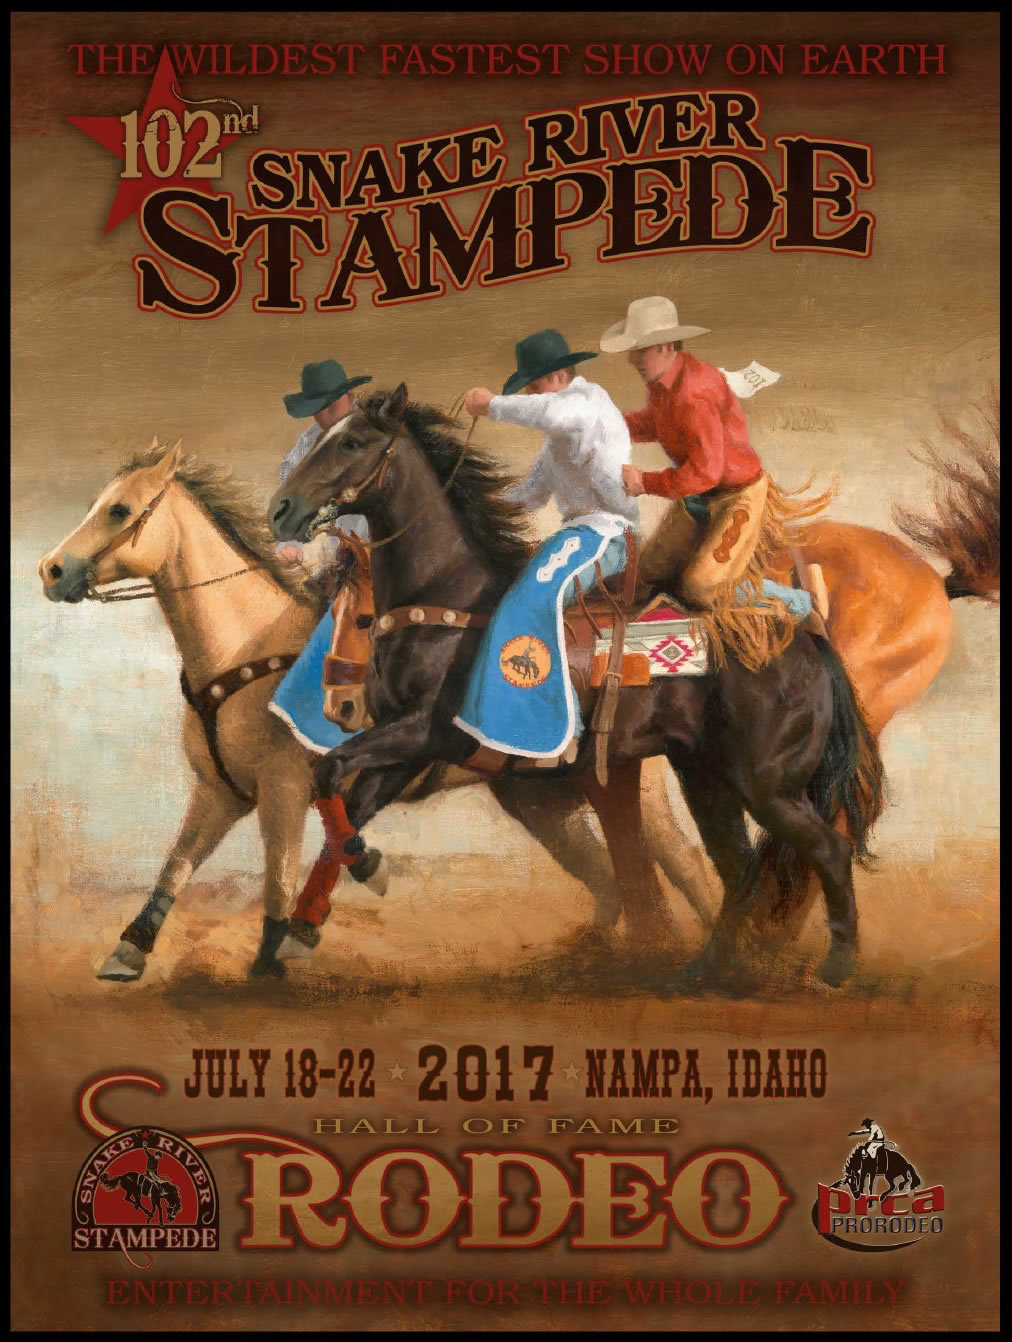 2017 Official Rodeo Poster Store Snake River Stampede